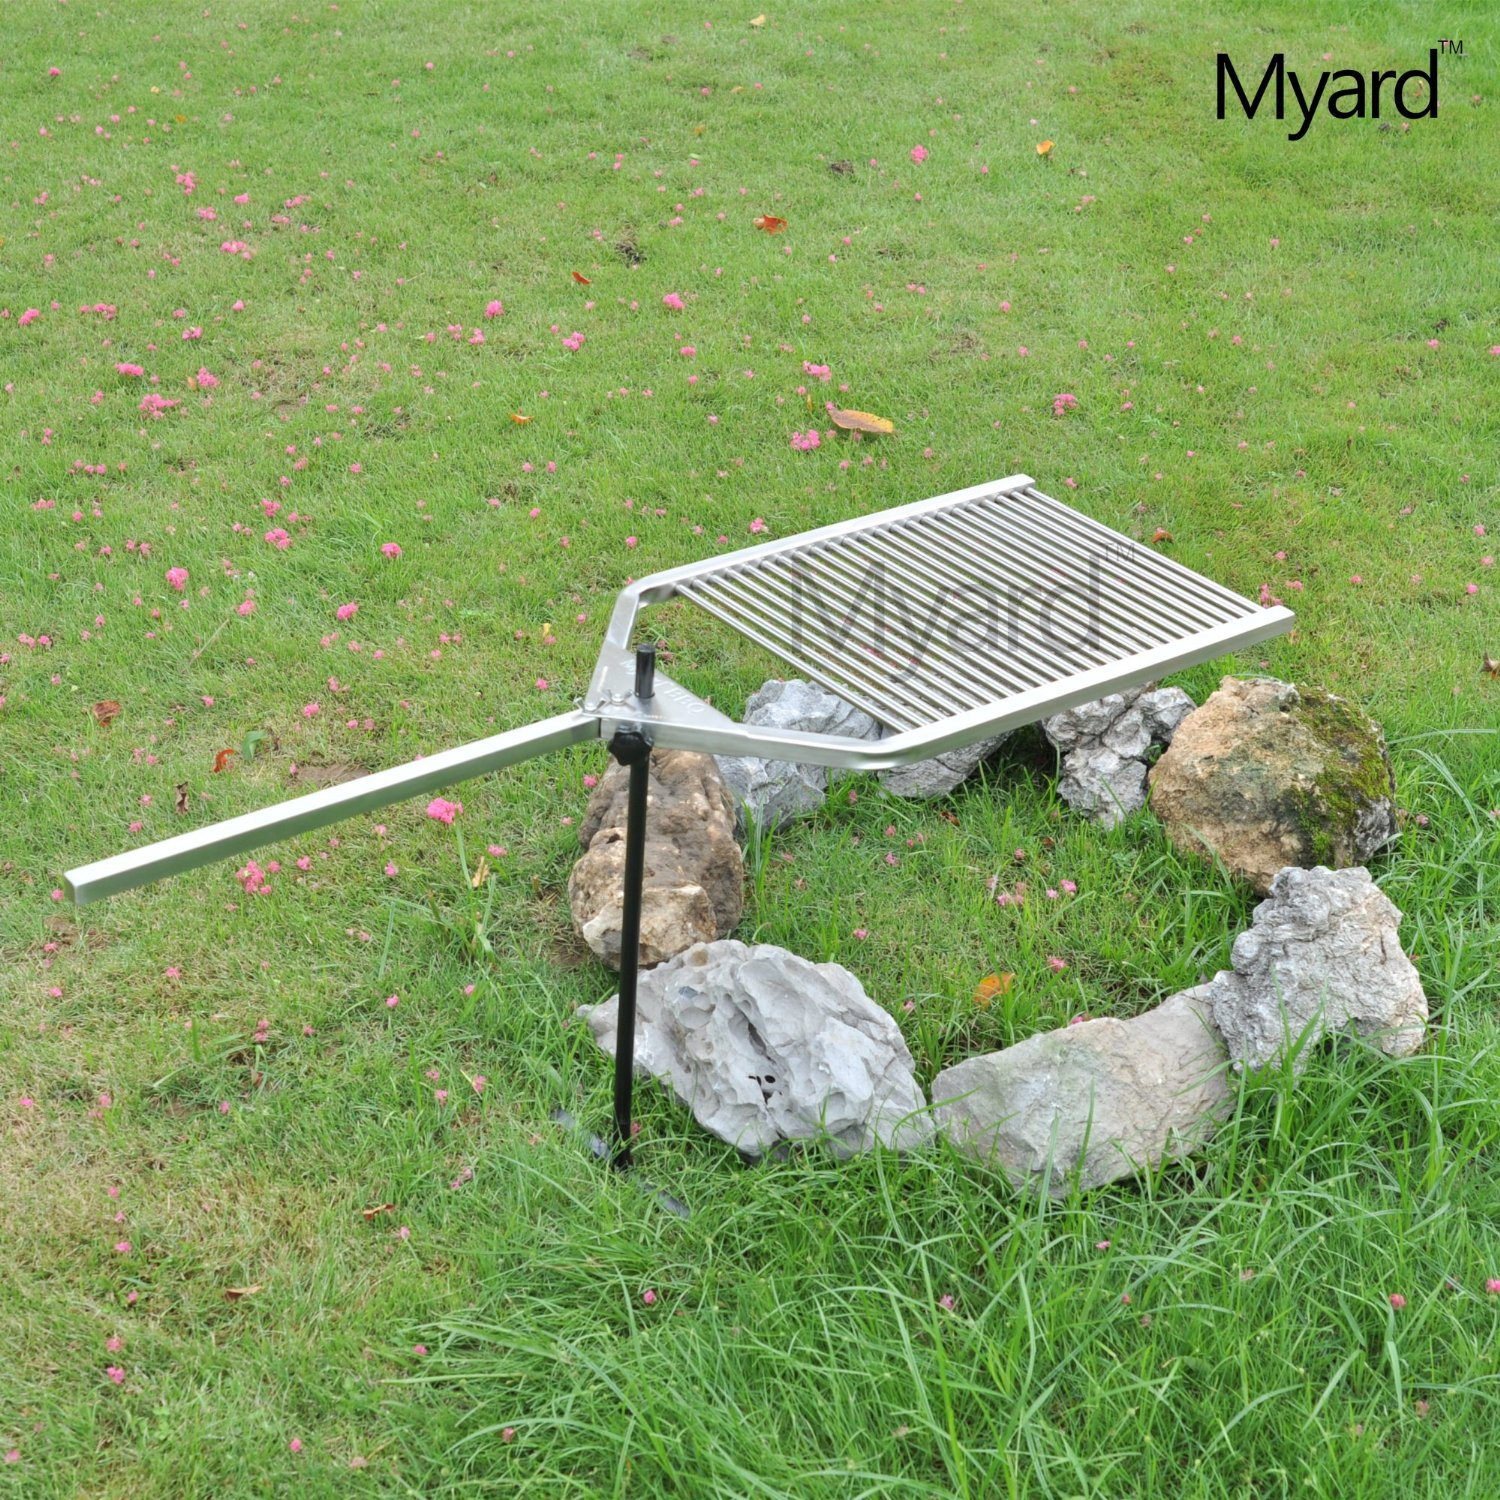 Myard Stainless Steel 304 Portable Open Fire Pit Campfire BBQ Swivel  Cooking Grill Grid Grate U0026